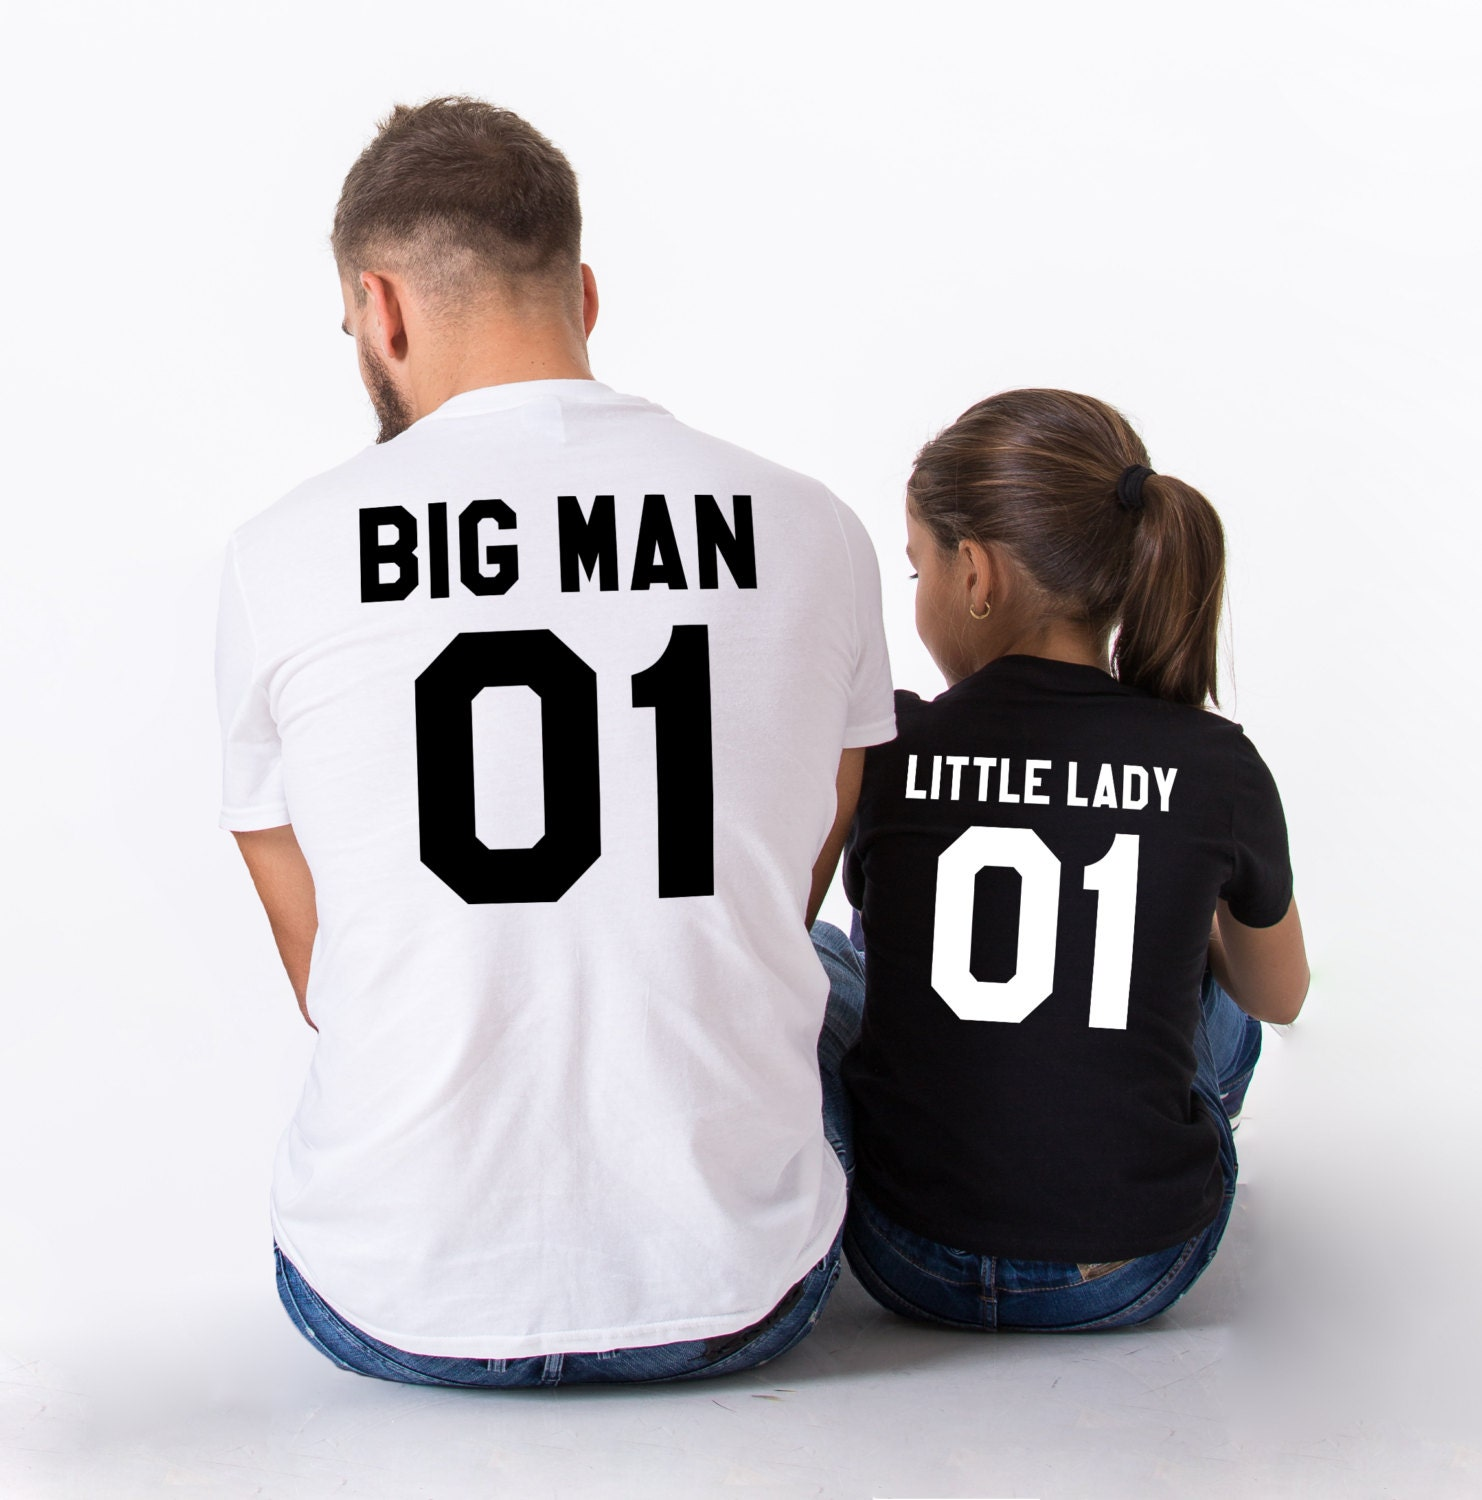 ad2922dedc492 Big man little lady father daughter matching shirts, Big man little lady  father daughter matching T-shirts,100% cotton,UNISEX,Price per item